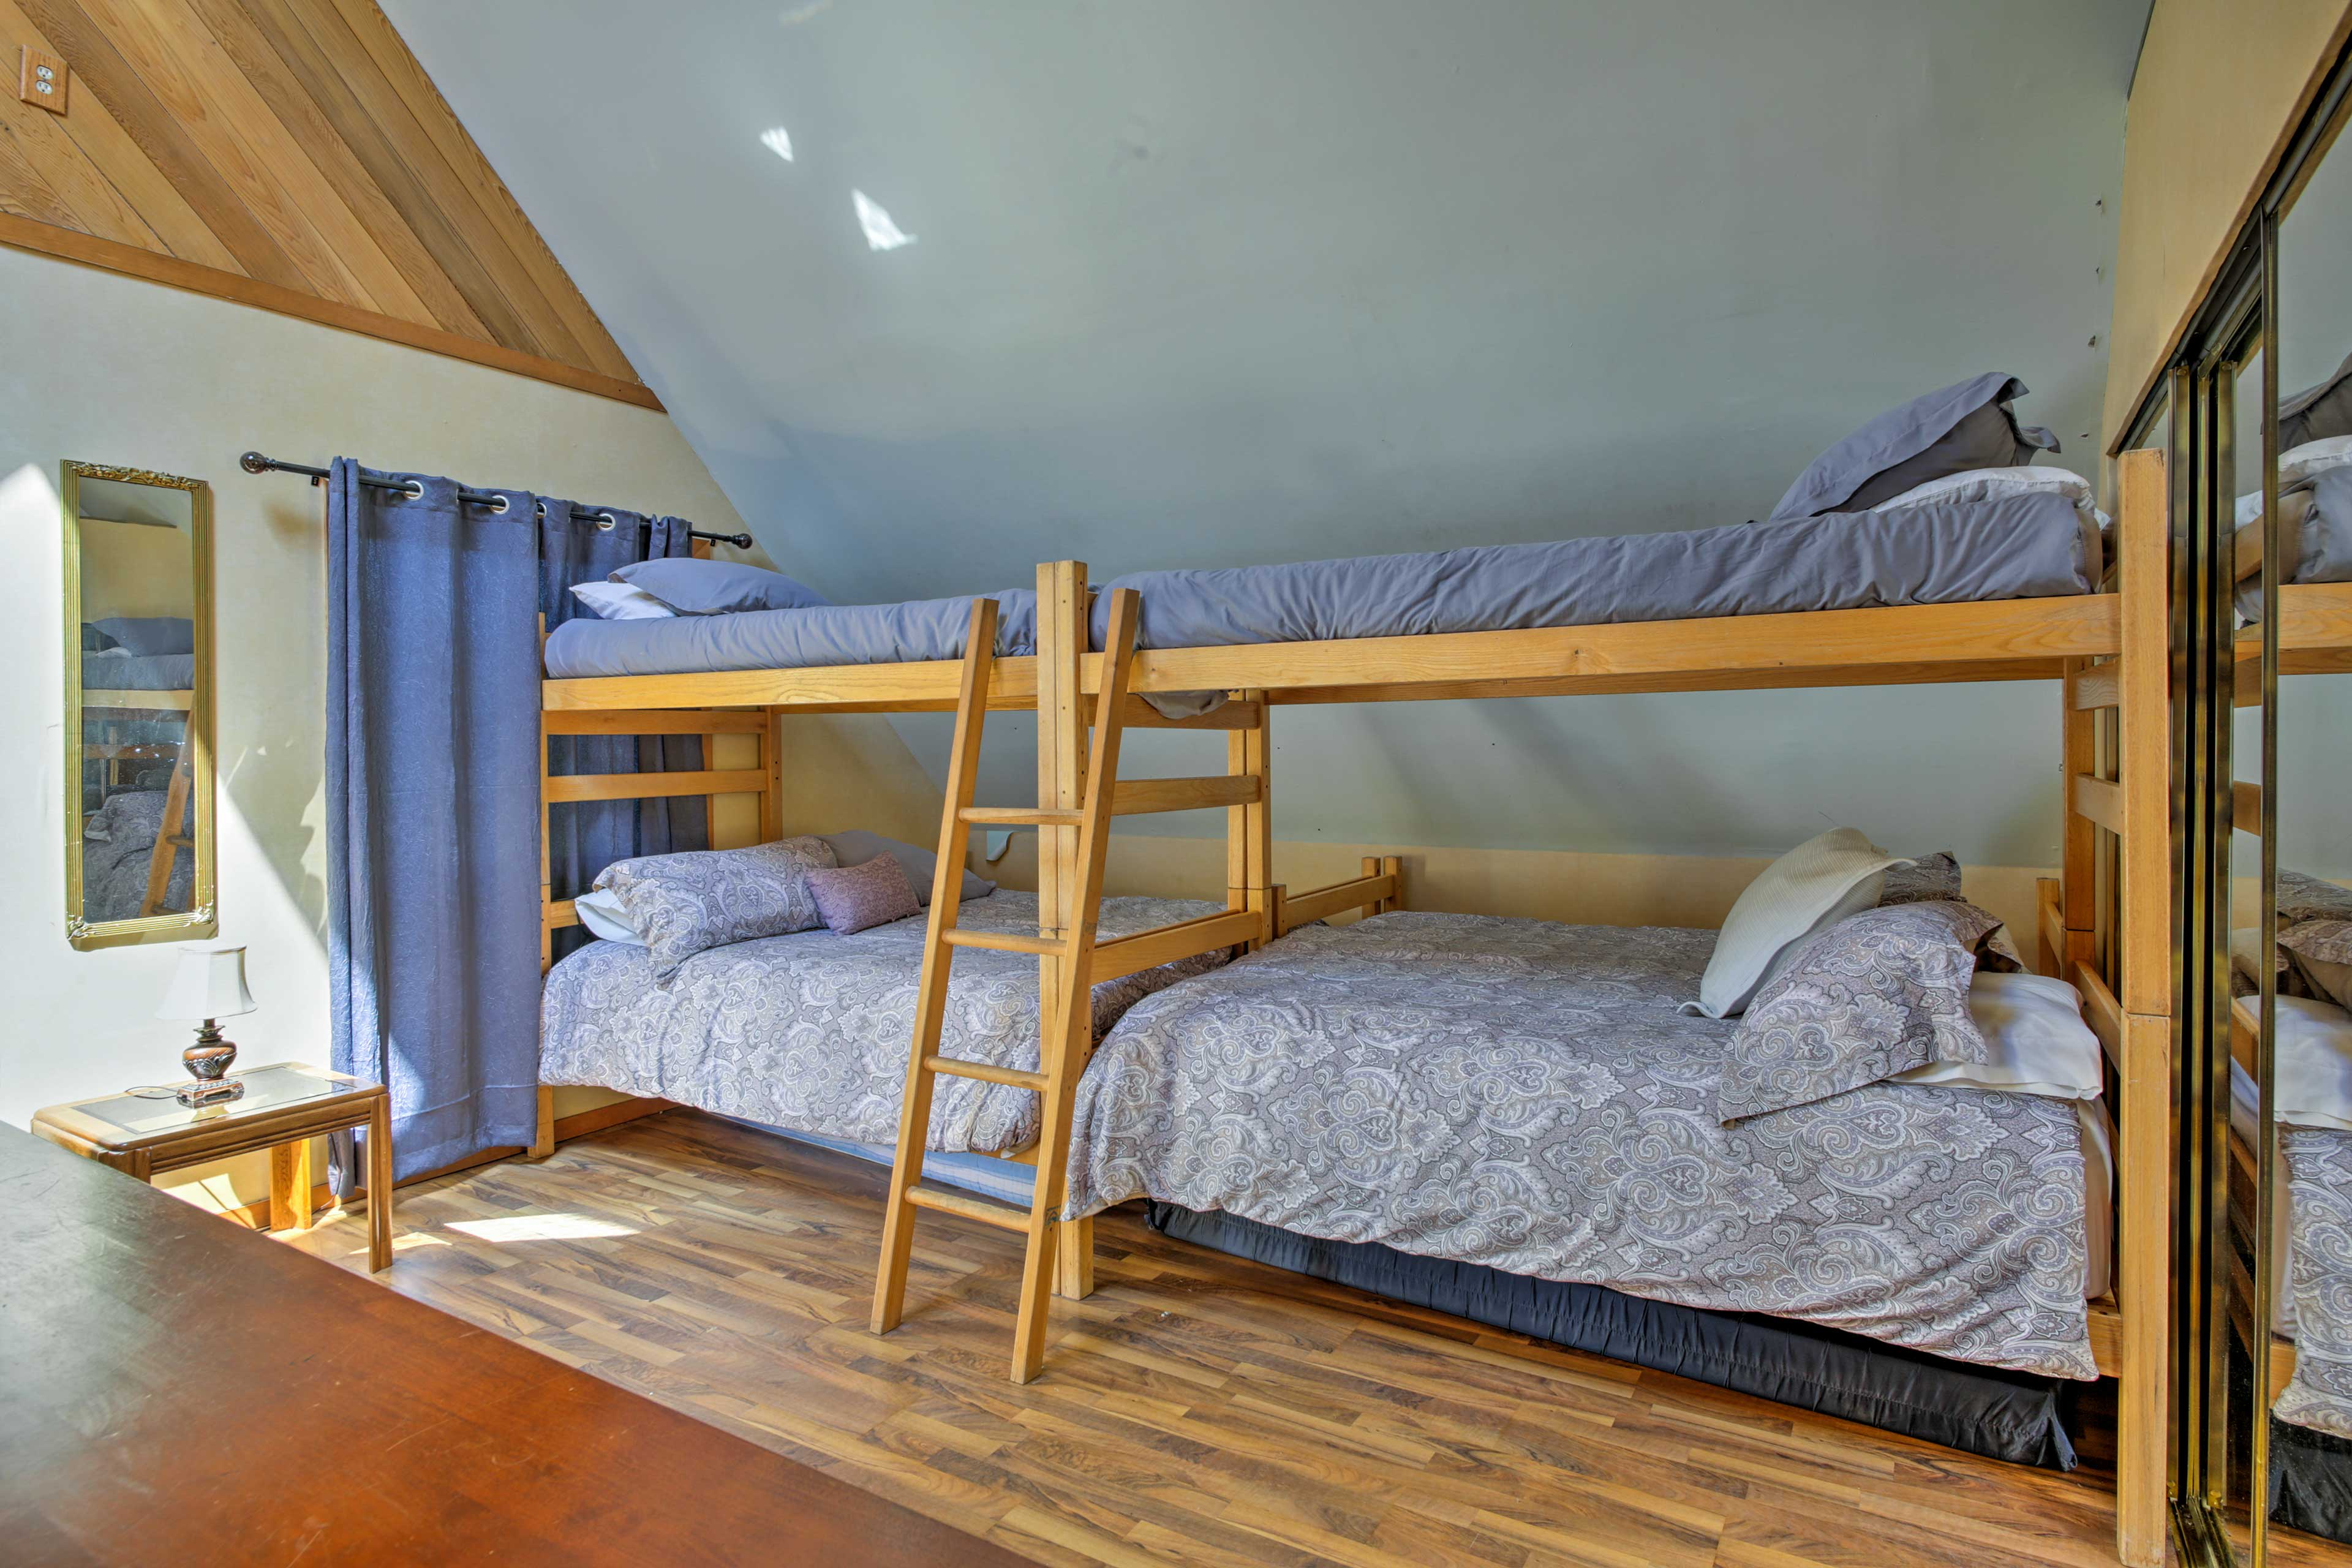 The second floor also boasts 2 twin-over-king bunk beds.